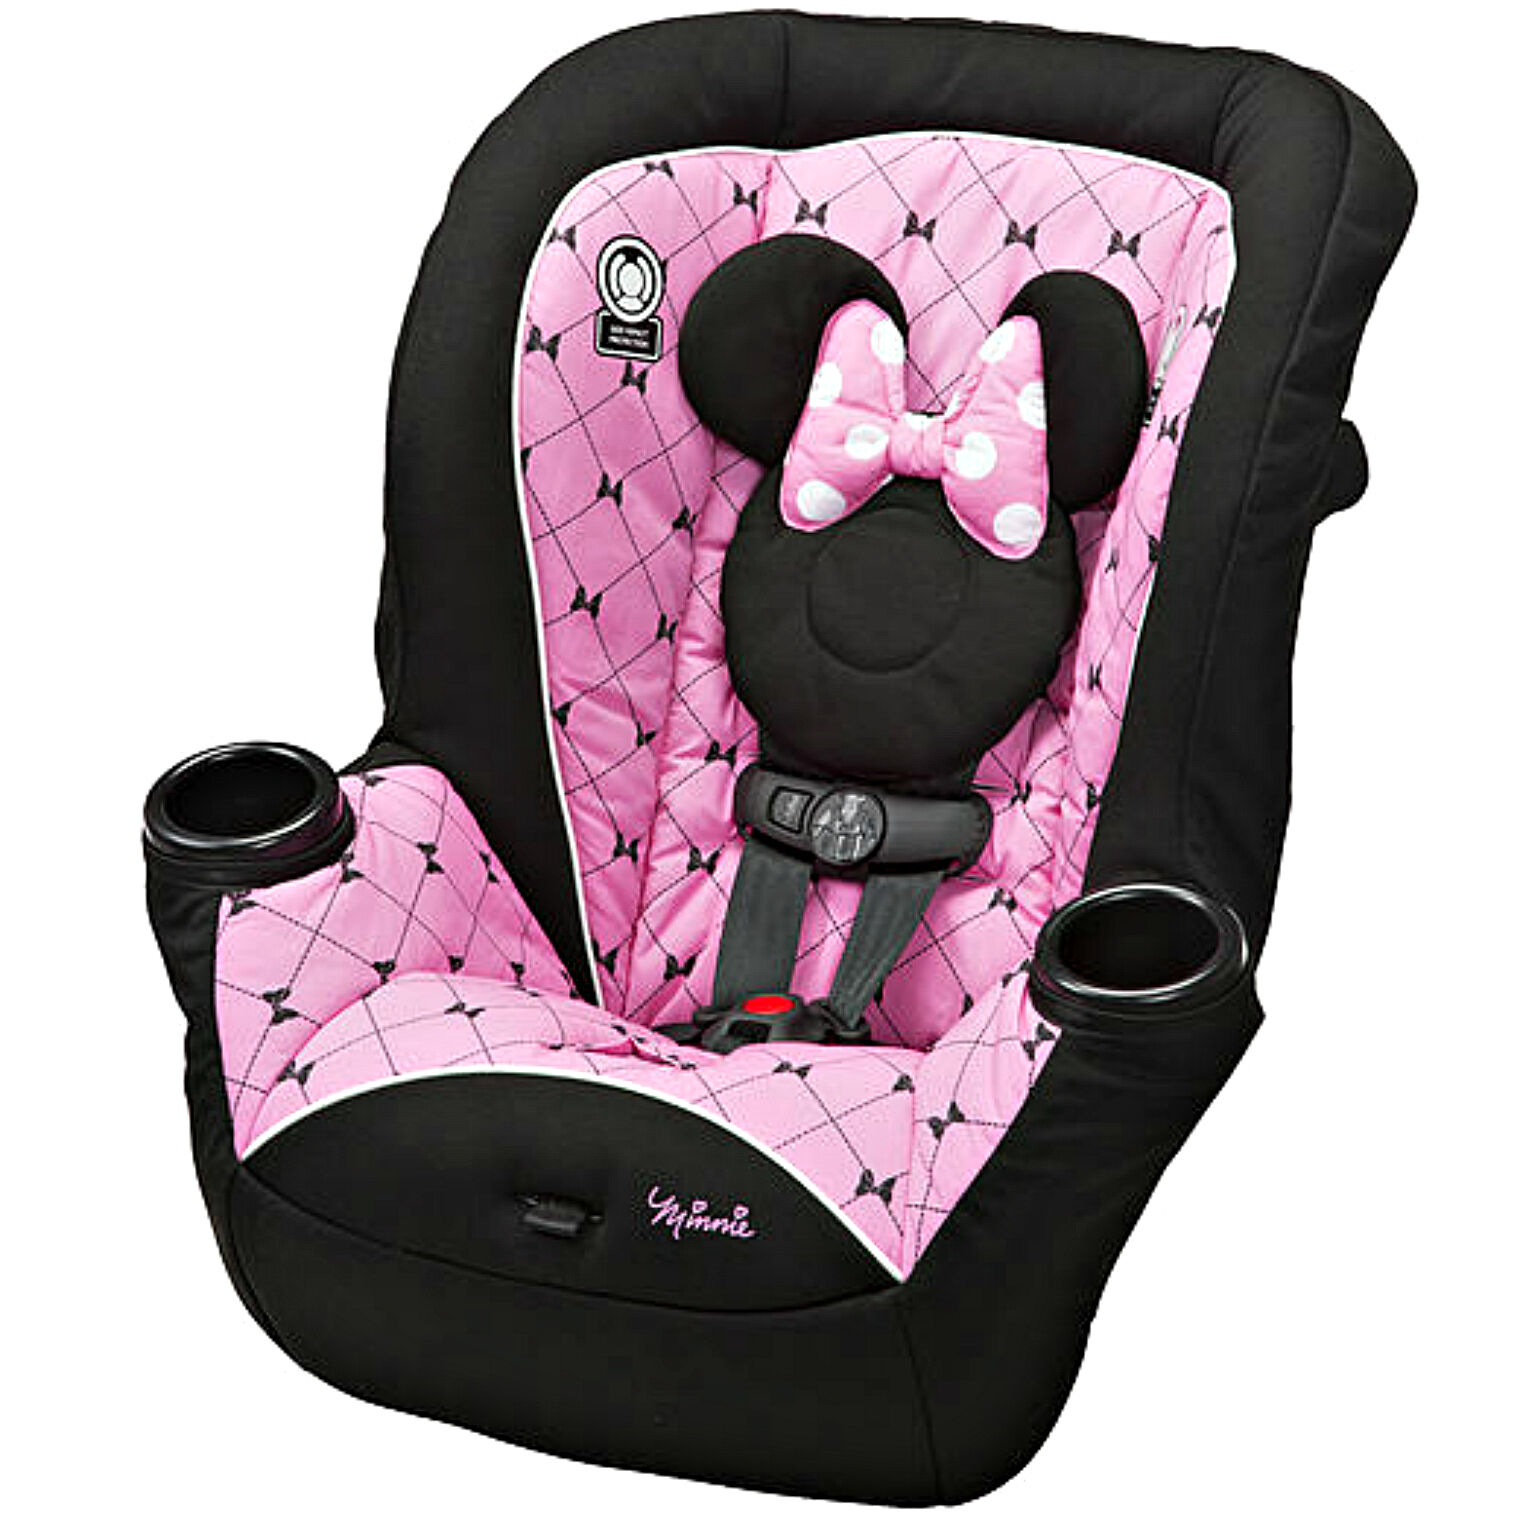 minnie mouse convertible baby car seat toddler safe forward rear face travel new. Black Bedroom Furniture Sets. Home Design Ideas